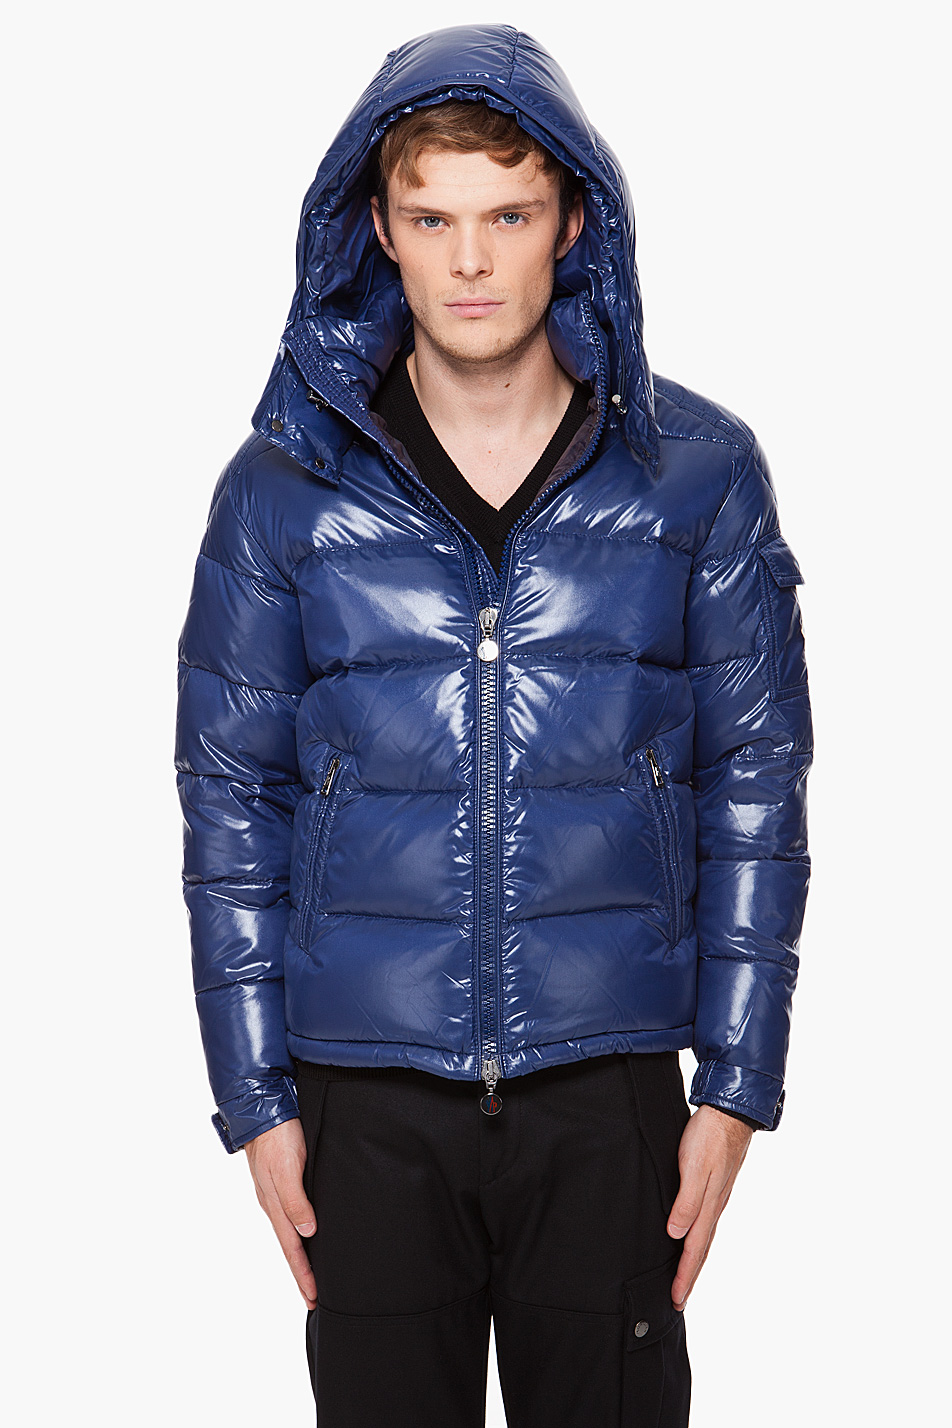 Hooded Jean Jacket For Men